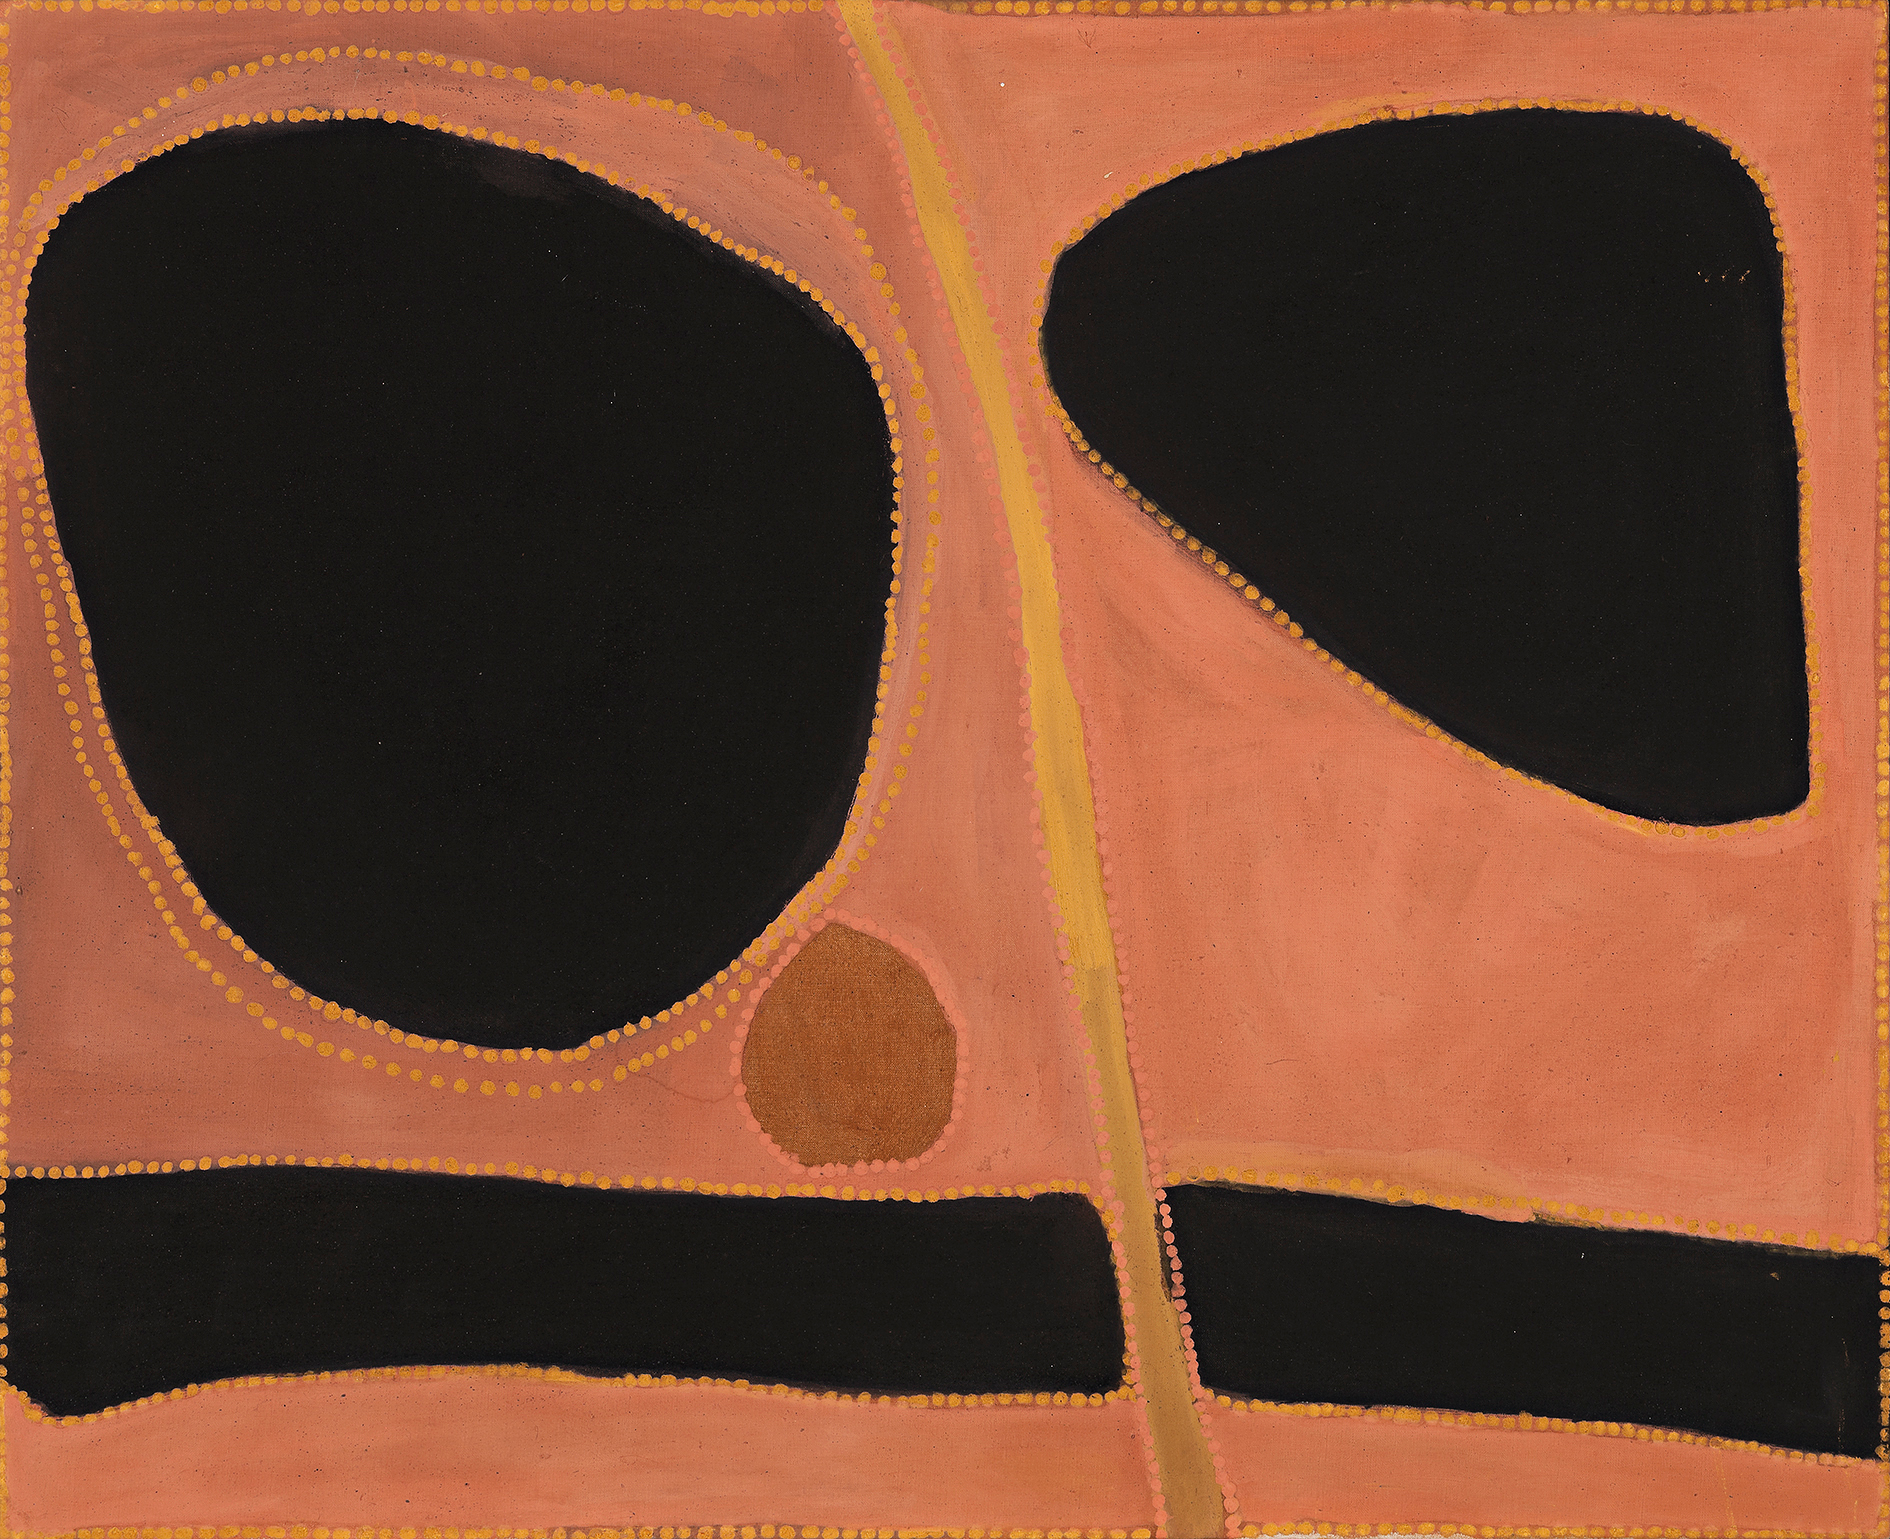 Rover Thomas,  Djugamerri and Bolgumerri , 1991 From the Laverty Collection, sold at Deutscher and Hackett for $317,200 IBP